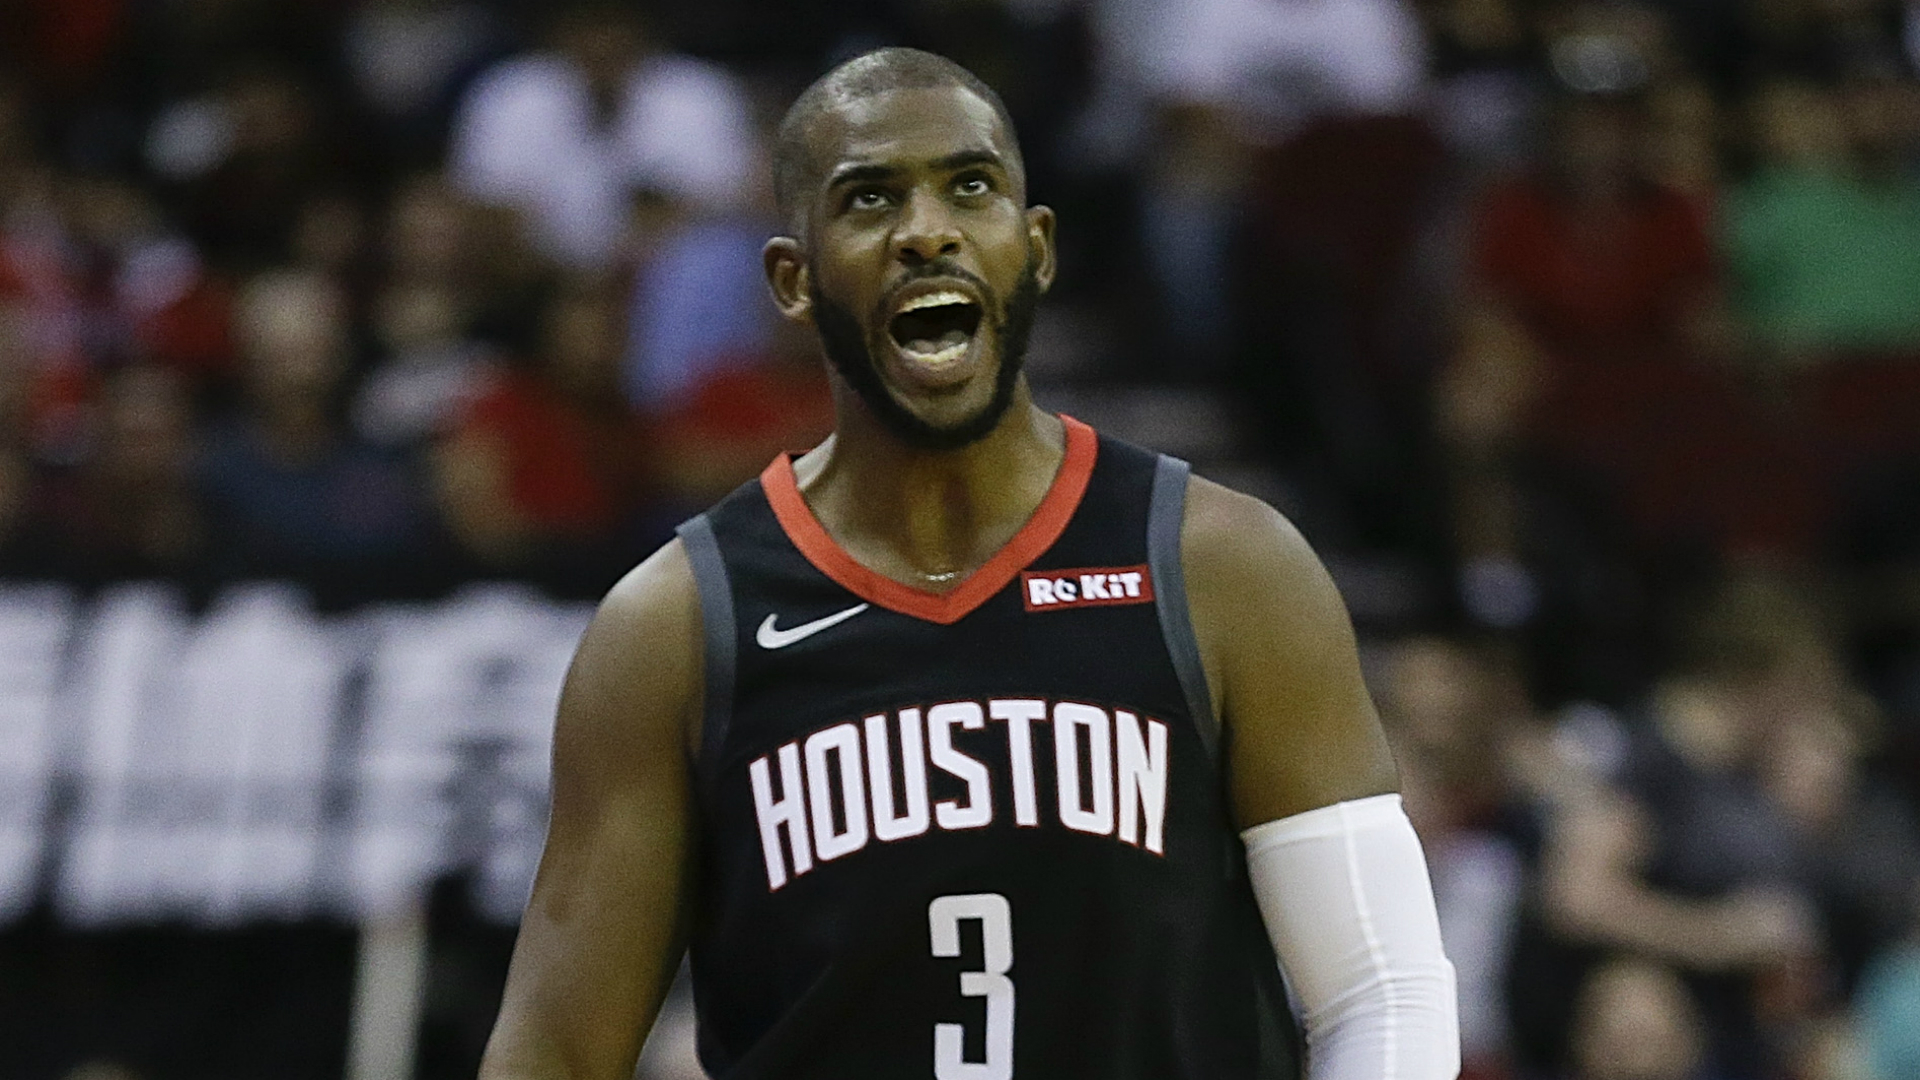 We take a look at the week in the United States, with Chris Paul set to stay with the Oklahoma City Thunder.